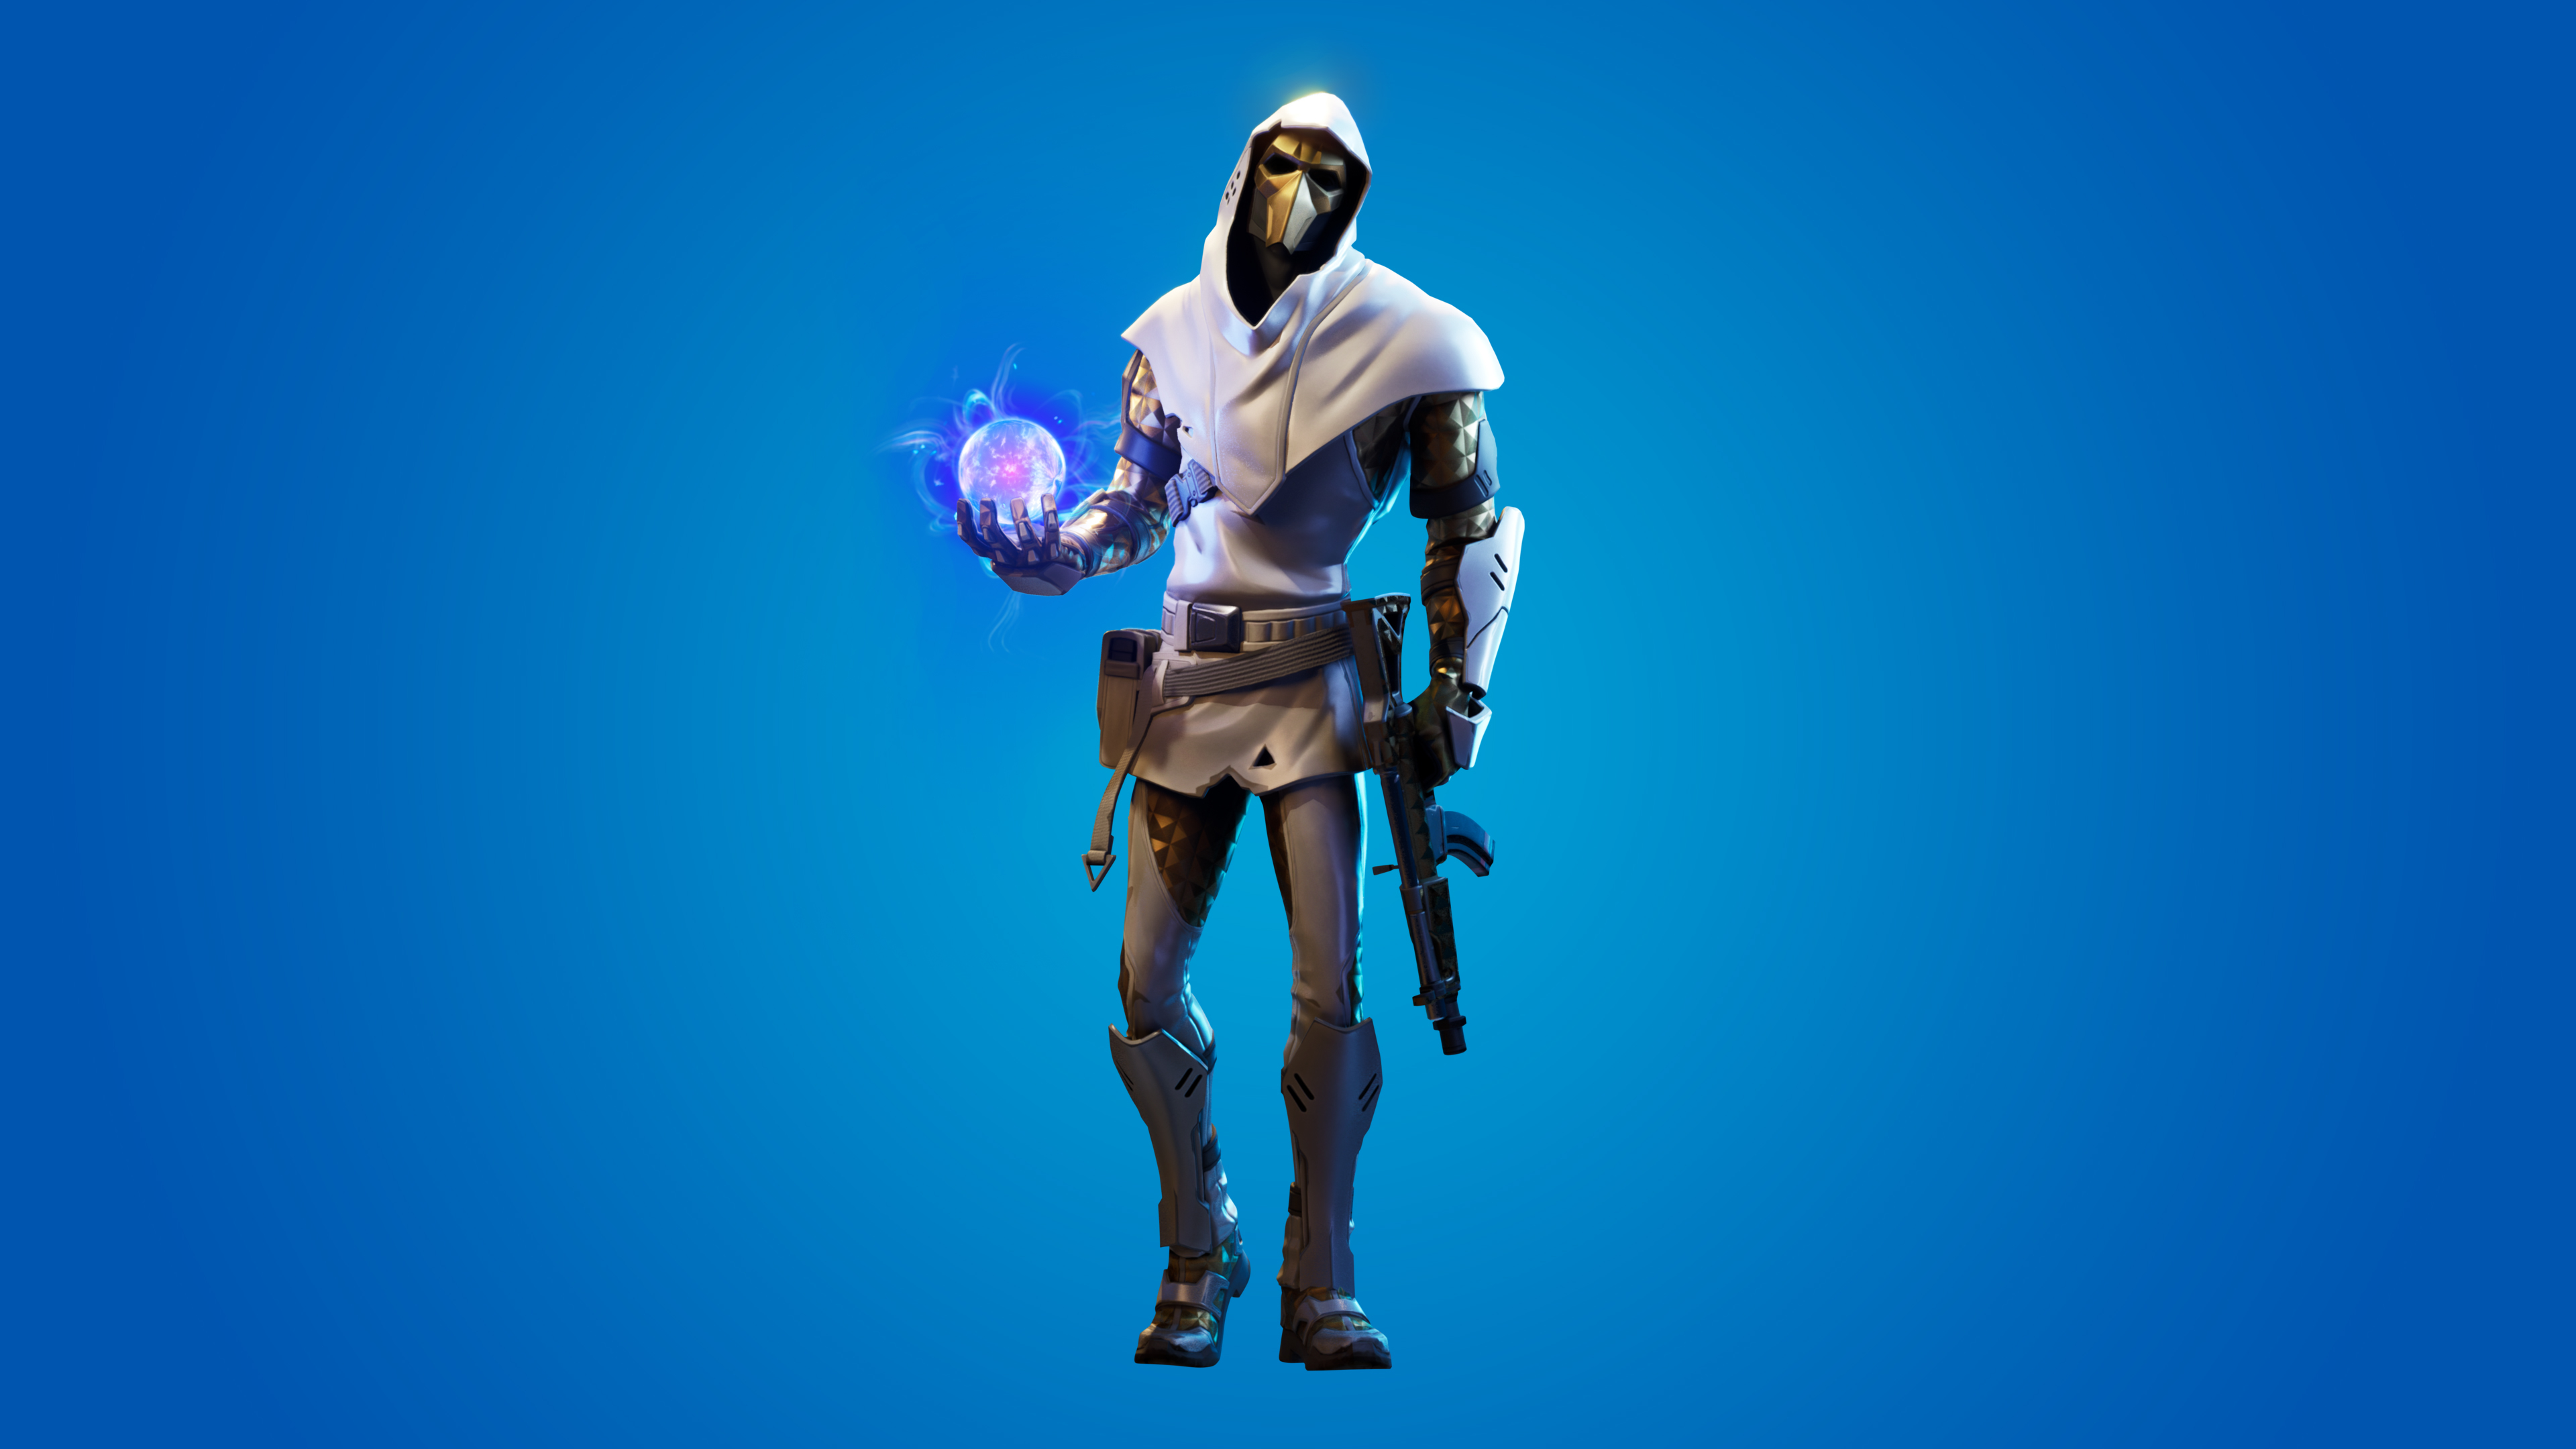 540x960 Fusion In Fortnite Season 11 540x960 Resolution Wallpaper Hd Games 4k Wallpapers Images Photos And Background